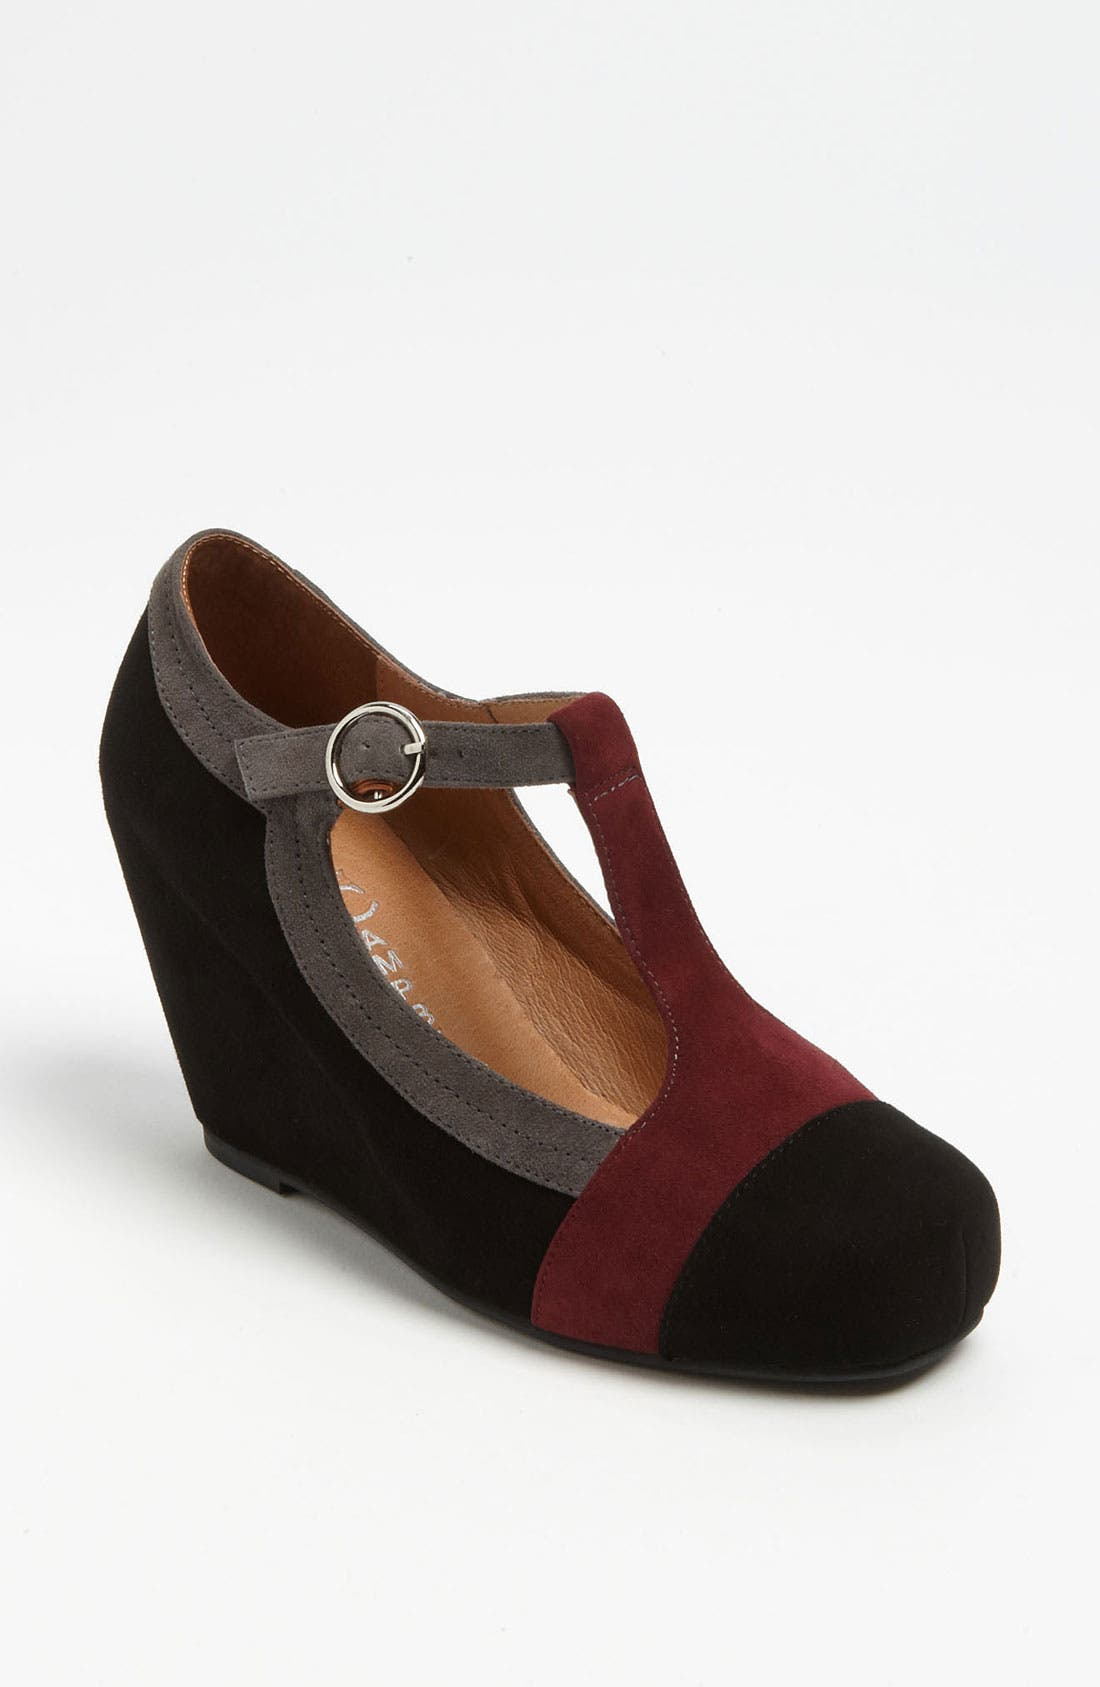 Main Image - Jeffrey Campbell 'Darnell' Wedge